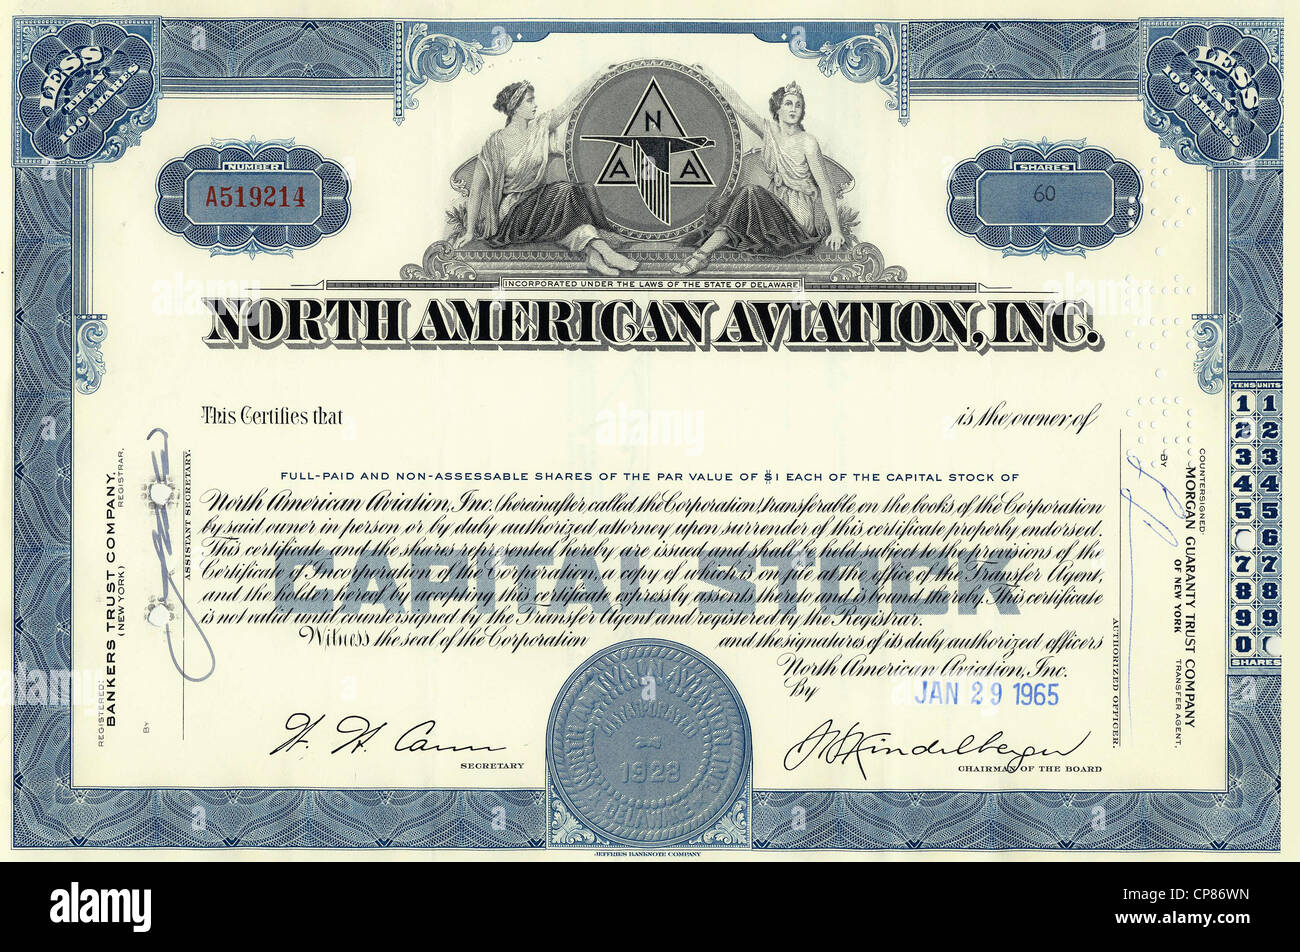 Historische aktie stock photos historische aktie stock for Share certificate template alberta